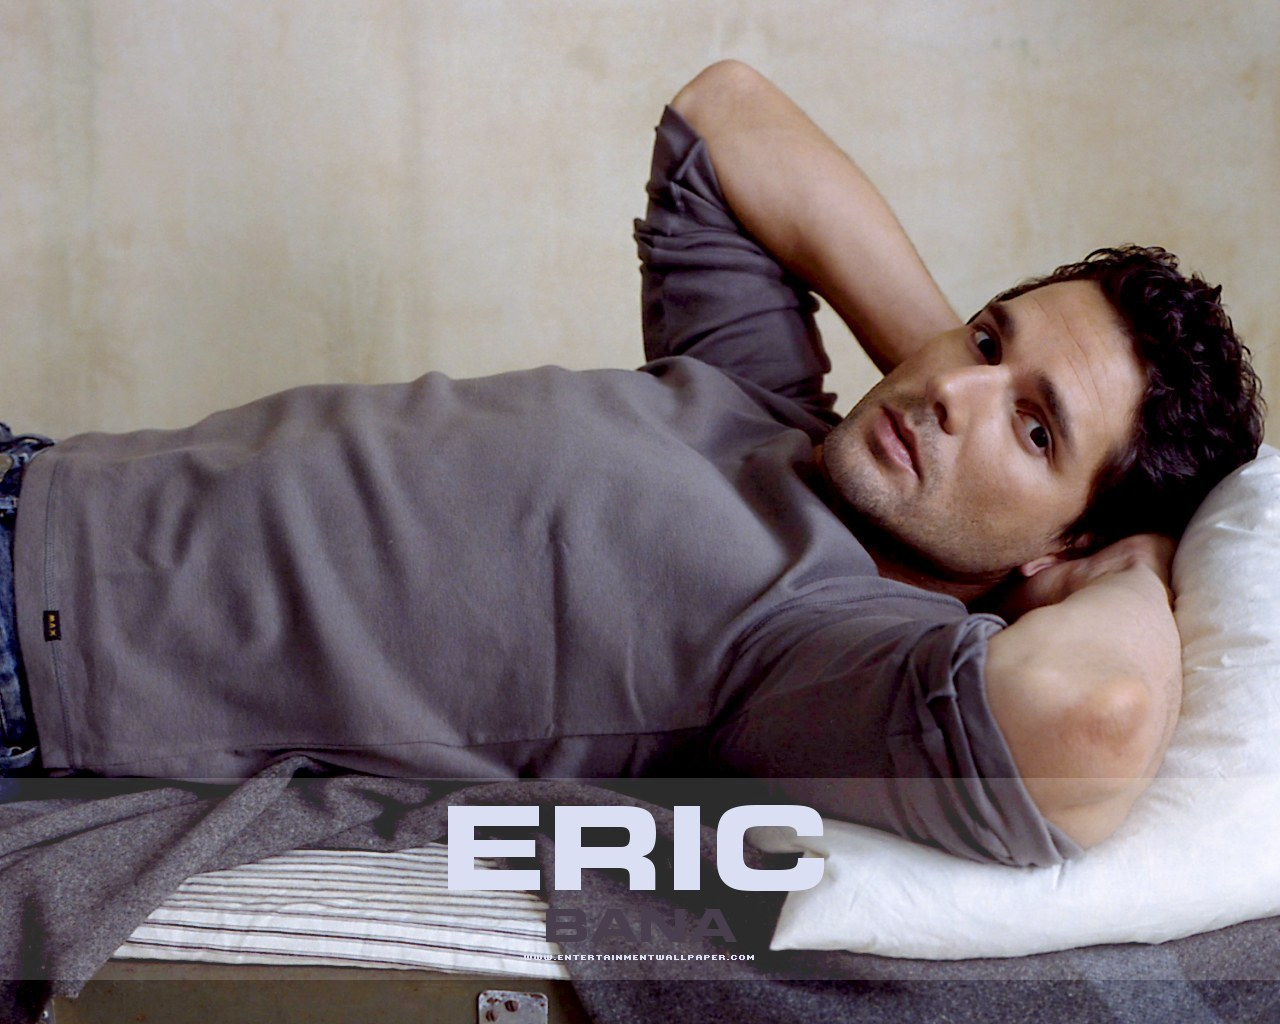 Sorry, Eric bana photos sexy apologise